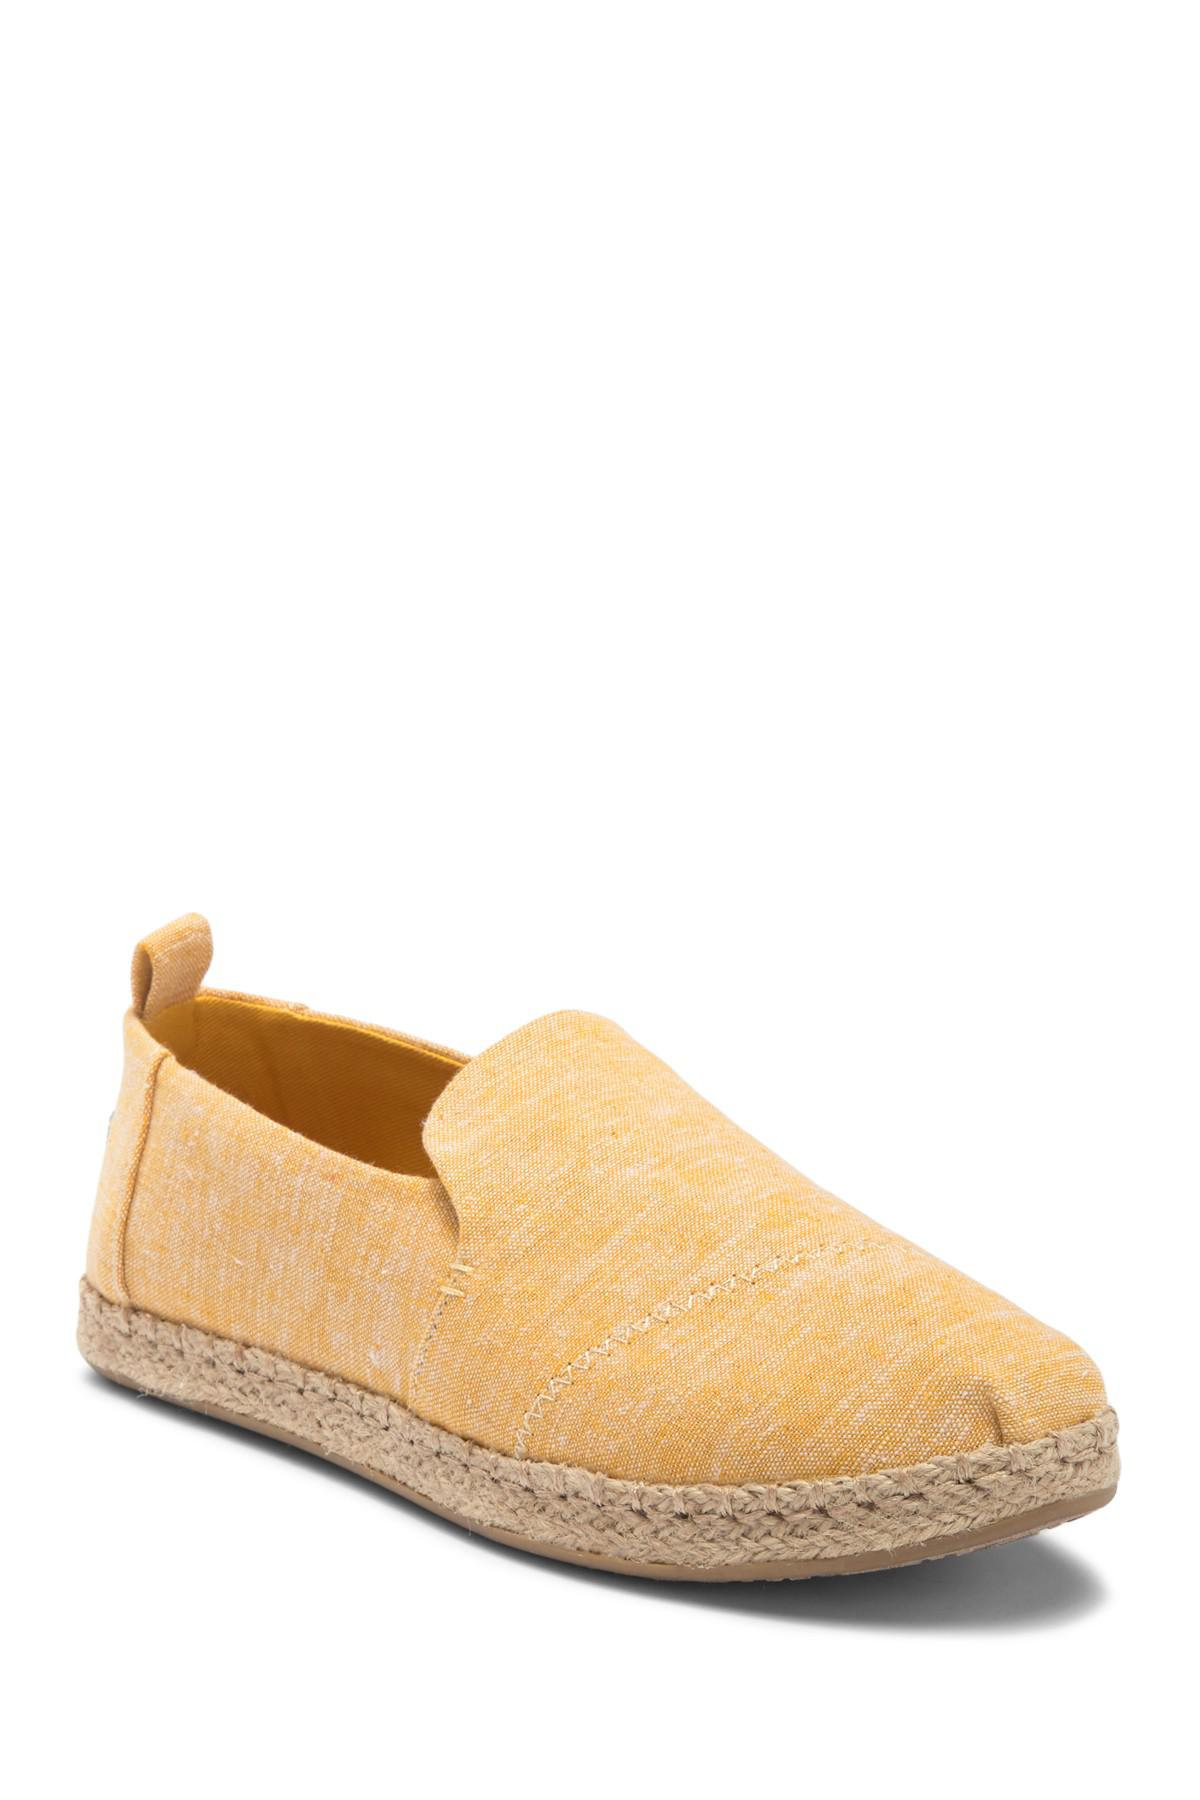 721486b5b73 TOMS. Women s Deconstructed Alpargata Chambray Slip-on Espadrille